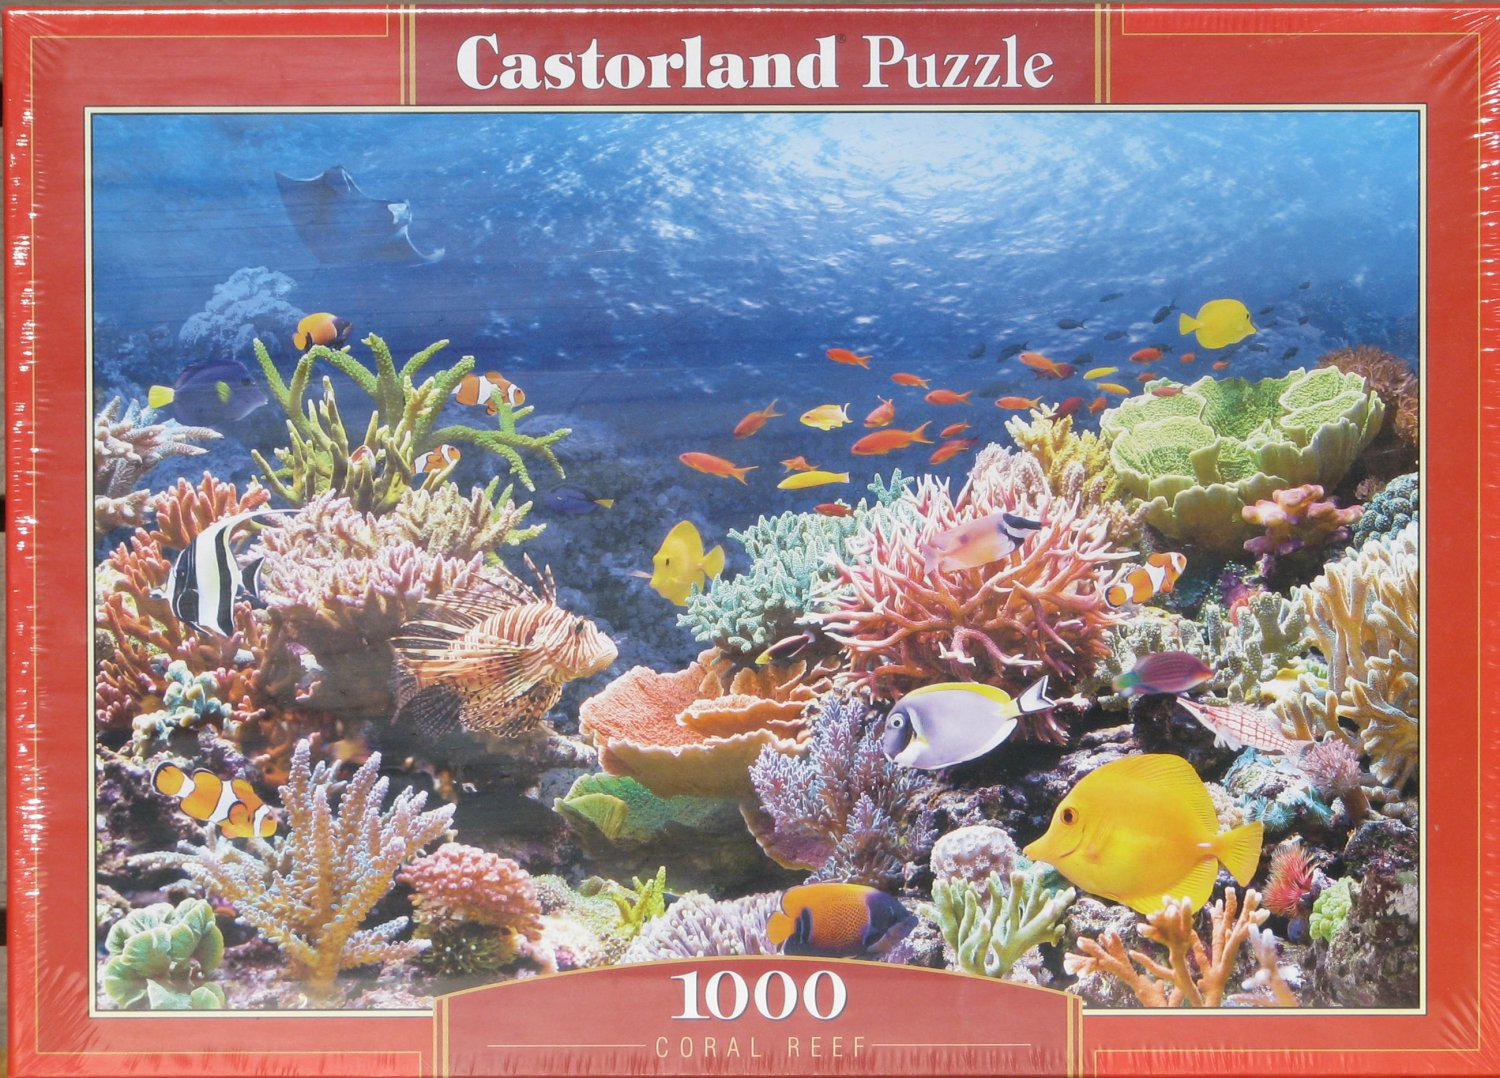 Castorland CORAL REEF 1000 pc Jigsaw Puzzle